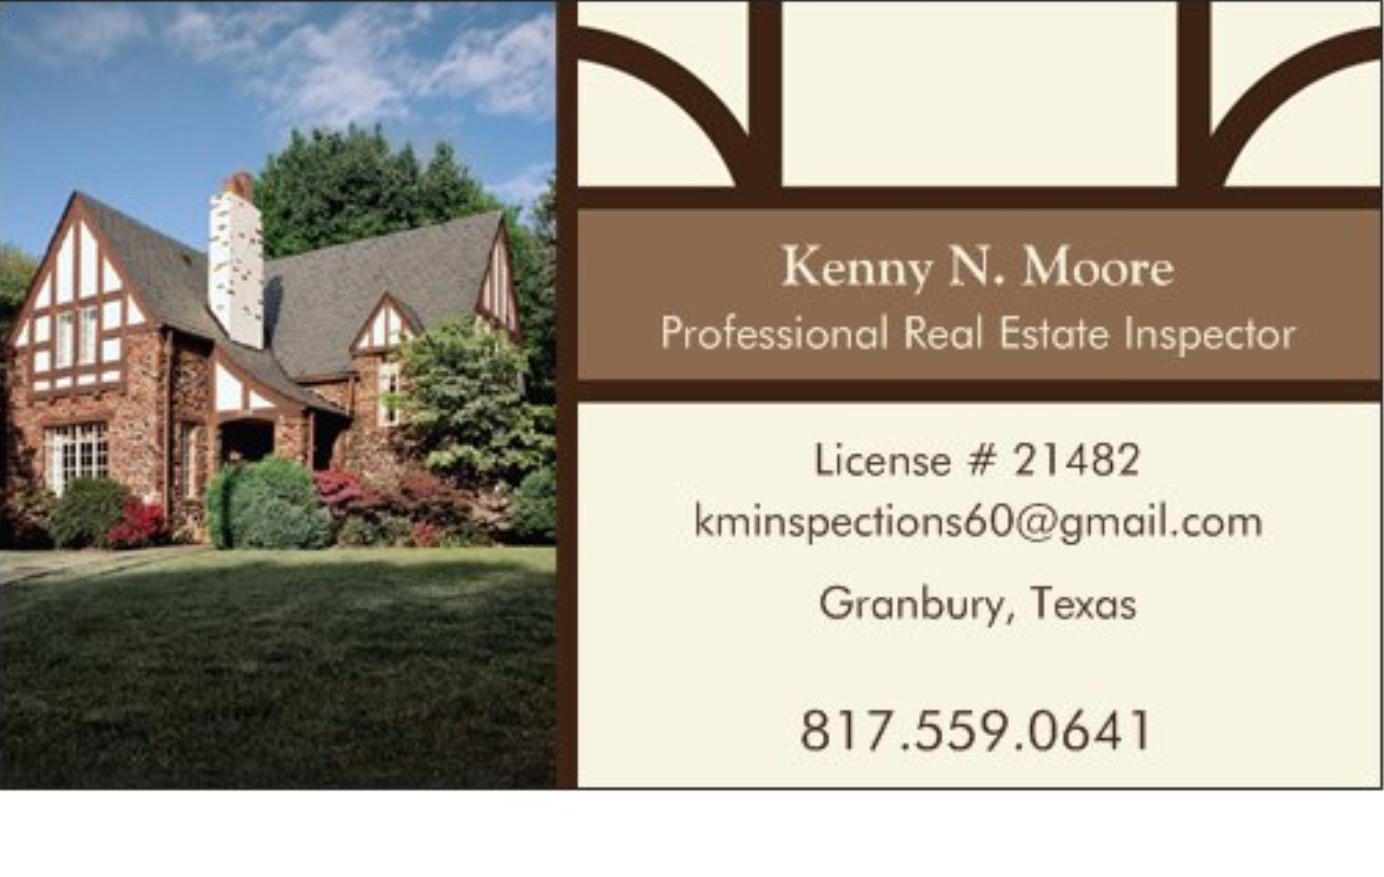 Kenny N. Moore Professional Real Estate Inspector